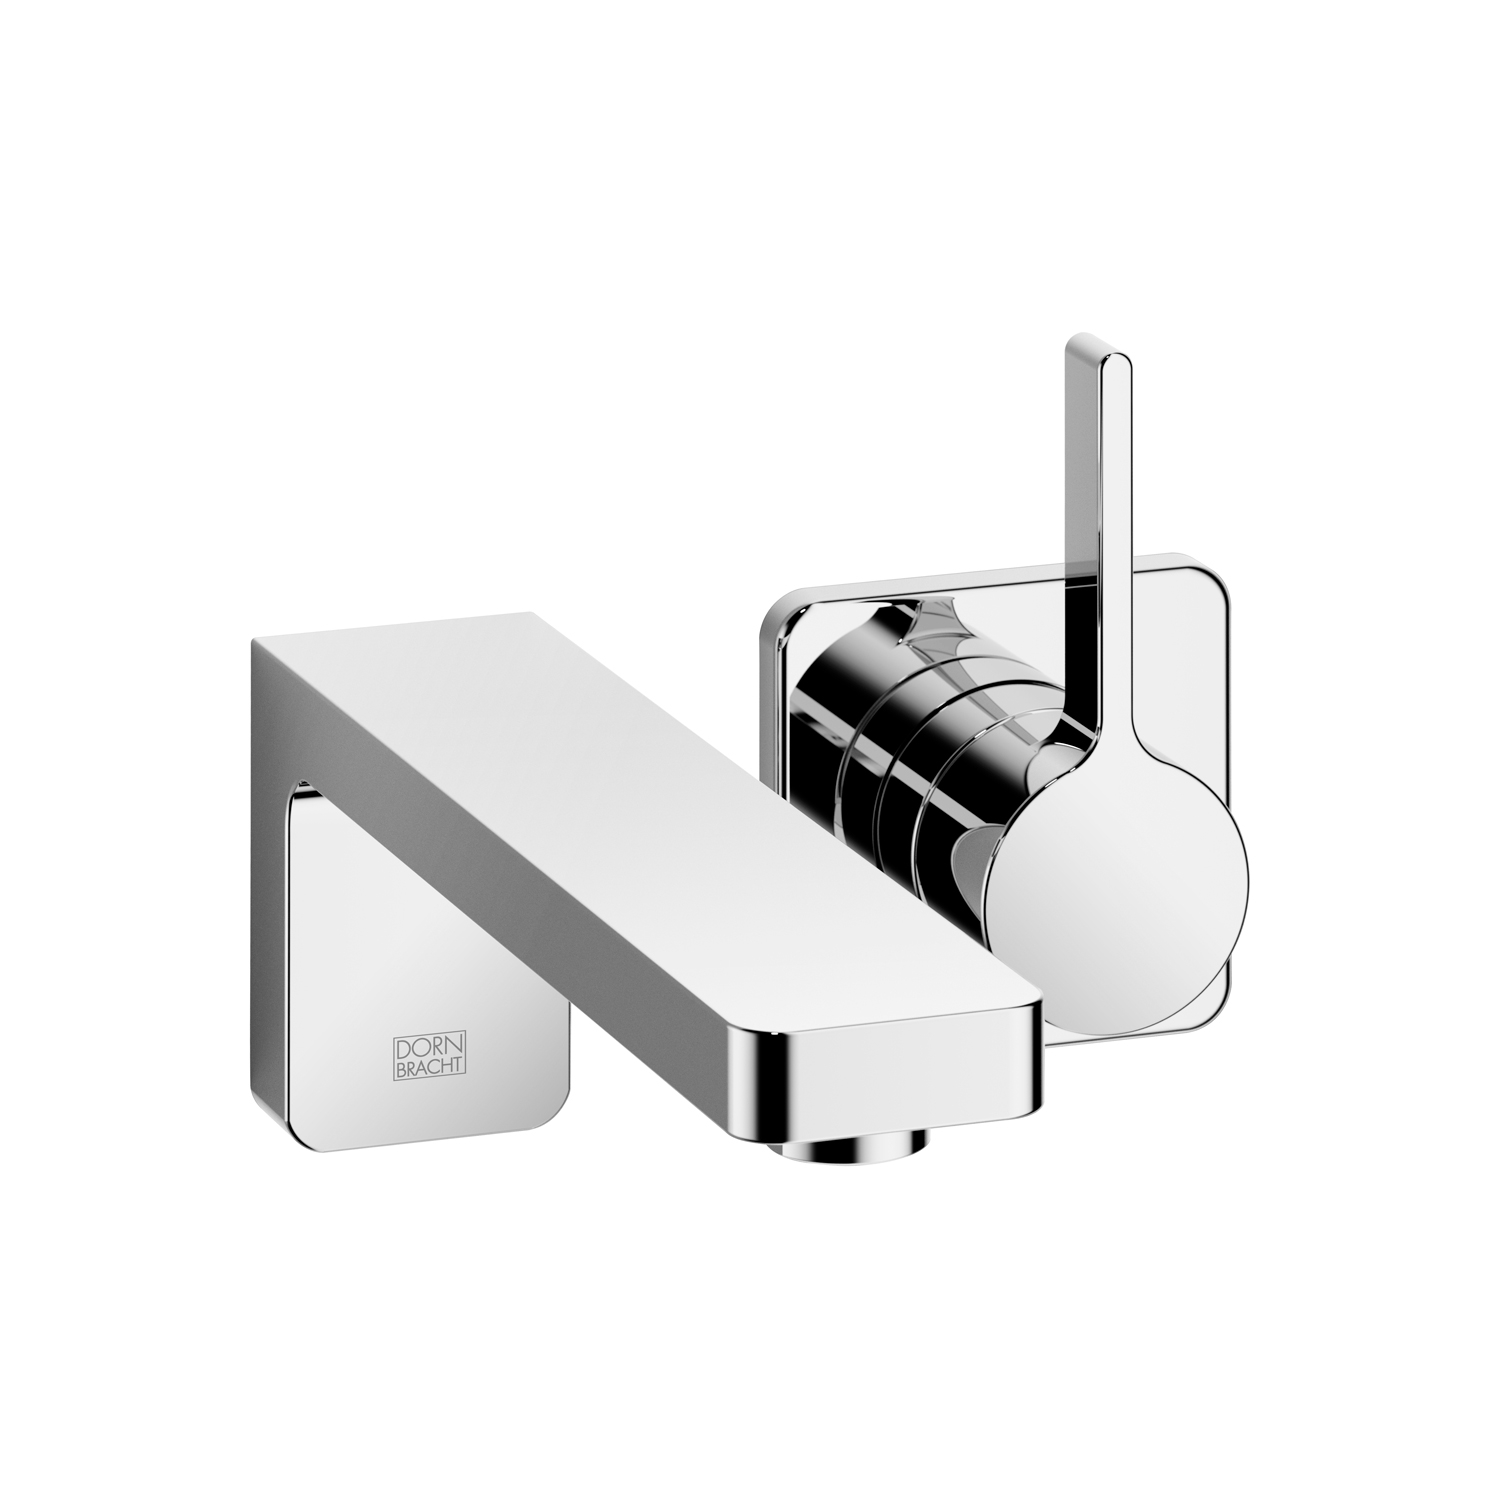 Dornbracht 36812710-000010 LULU Wall-Mounted Single-Lever Mixer without Drain - Polished Chrome